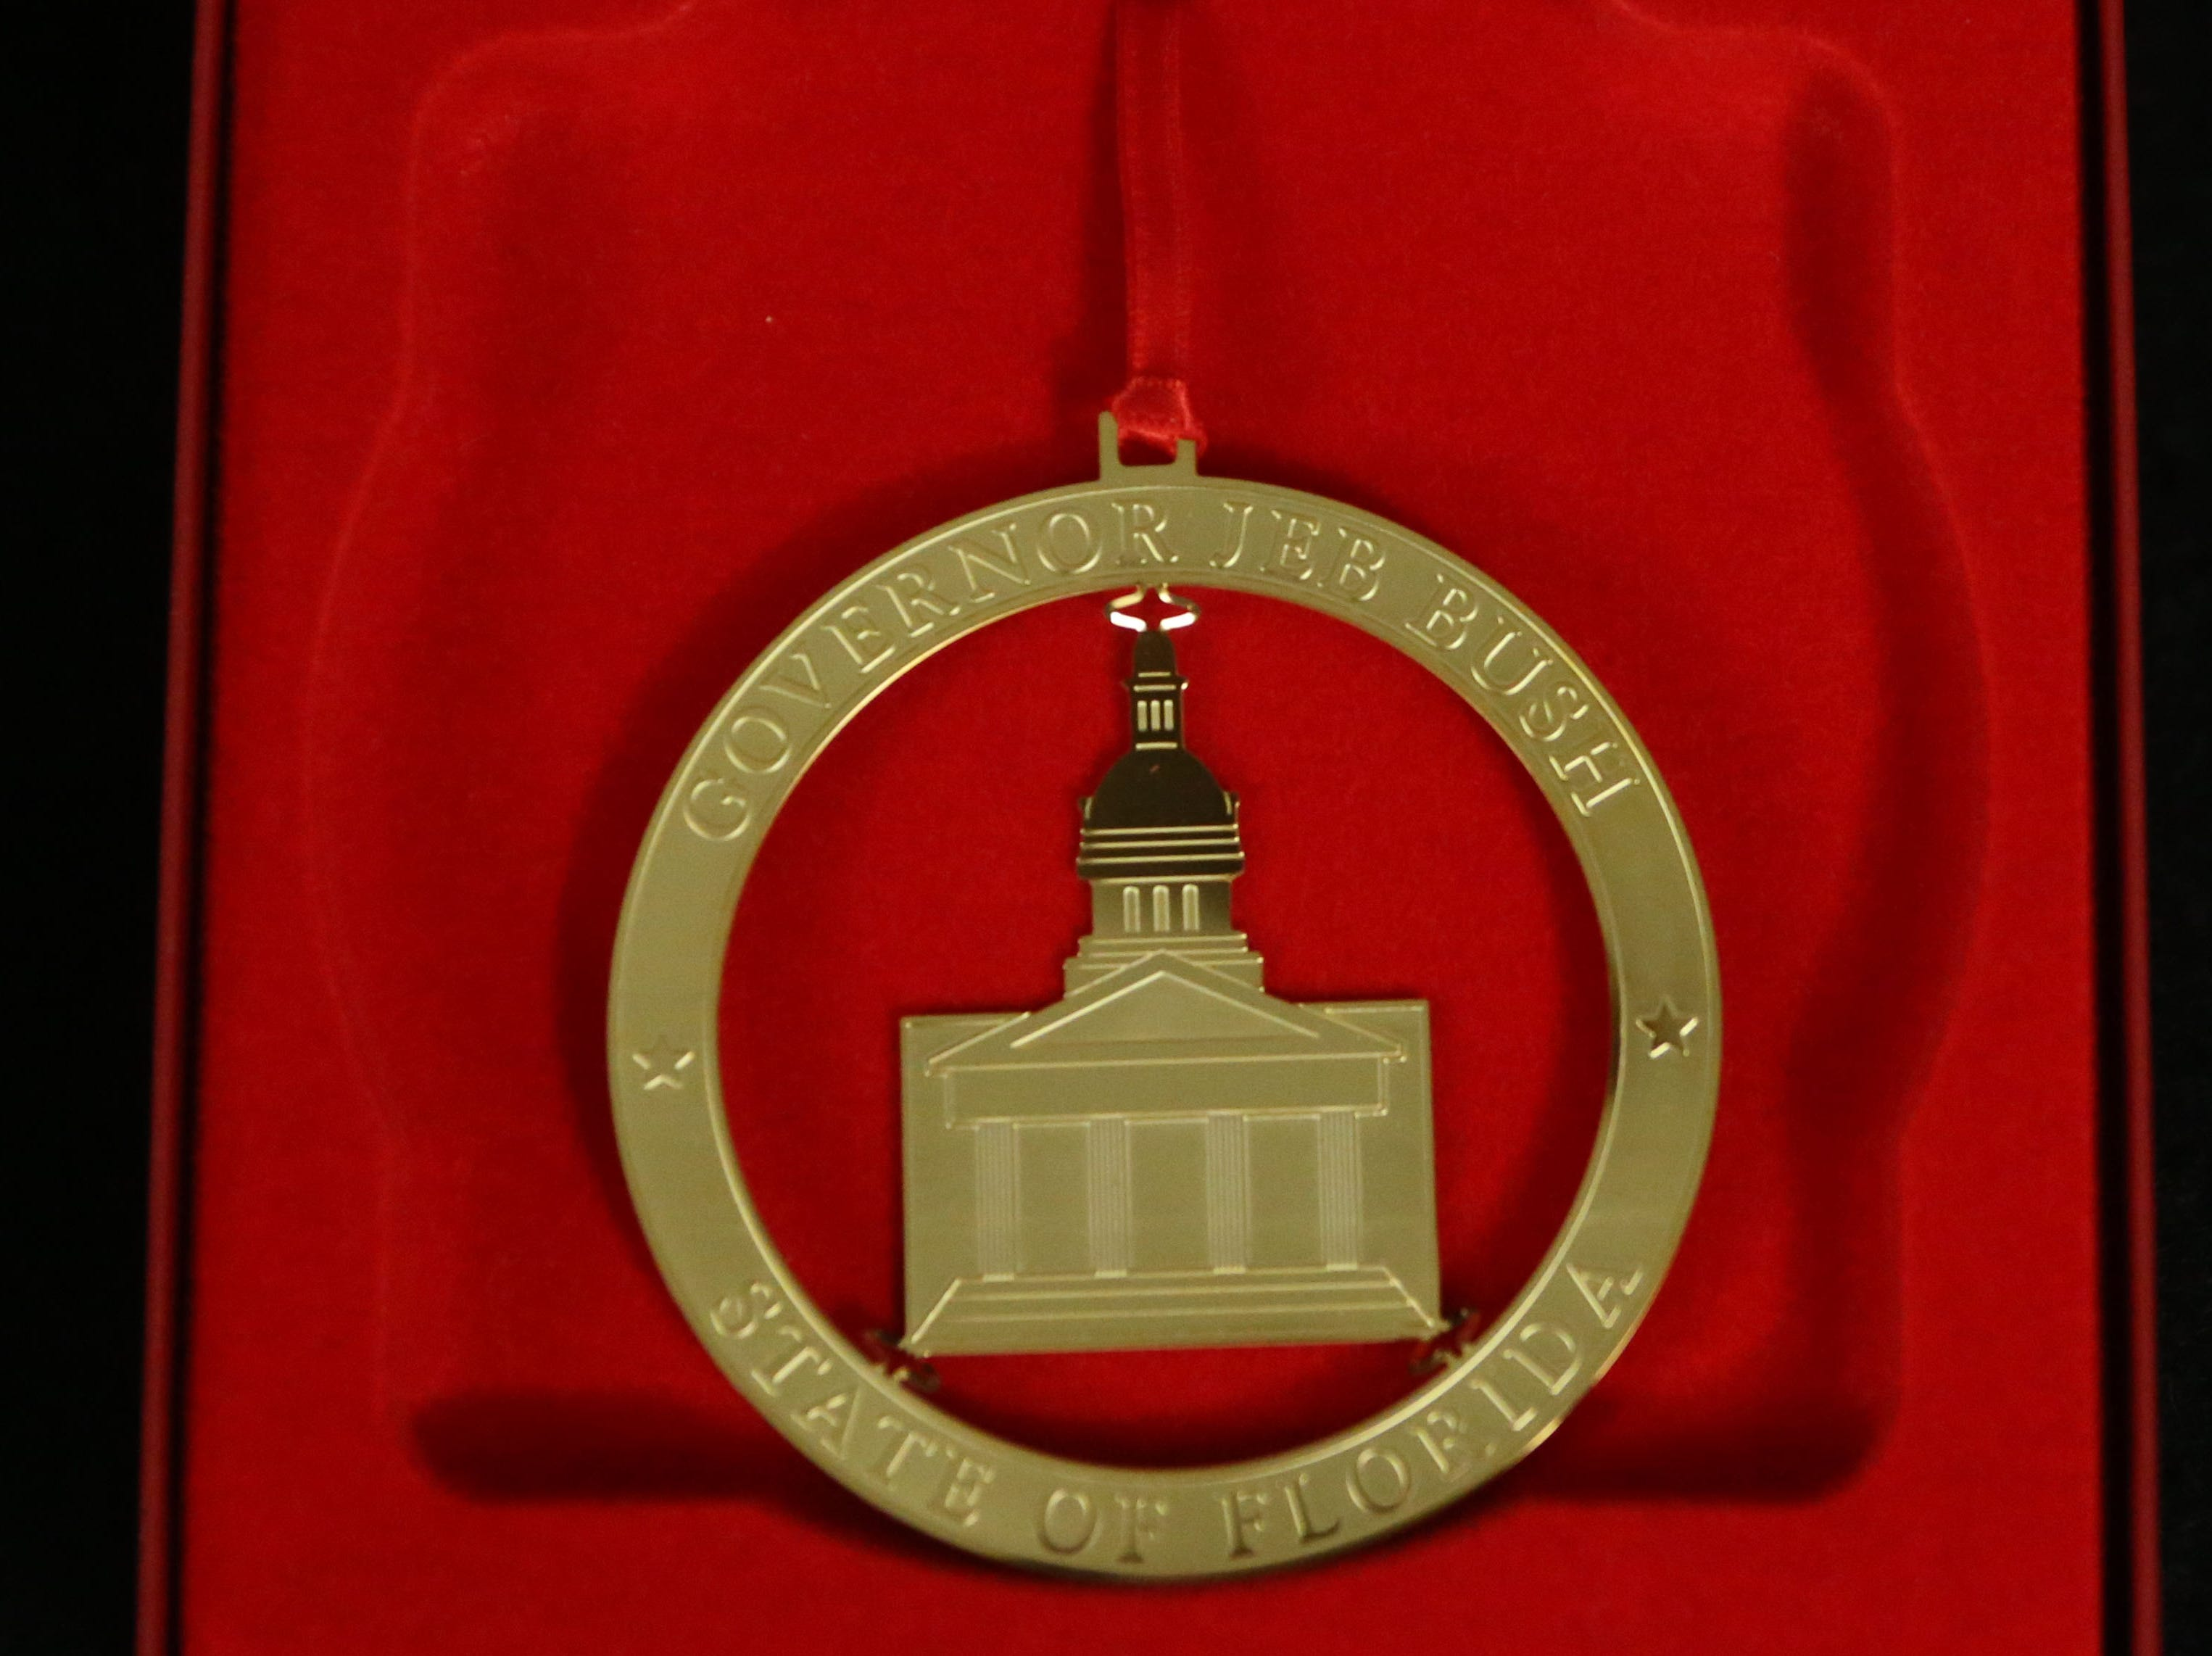 The Tallahassee historic Capitol hosts an exhibit on inaugurations of years past, Wednesday, Nov. 28, 2018. Displayed is an ornament which was given out by governors at the inaugural ball.